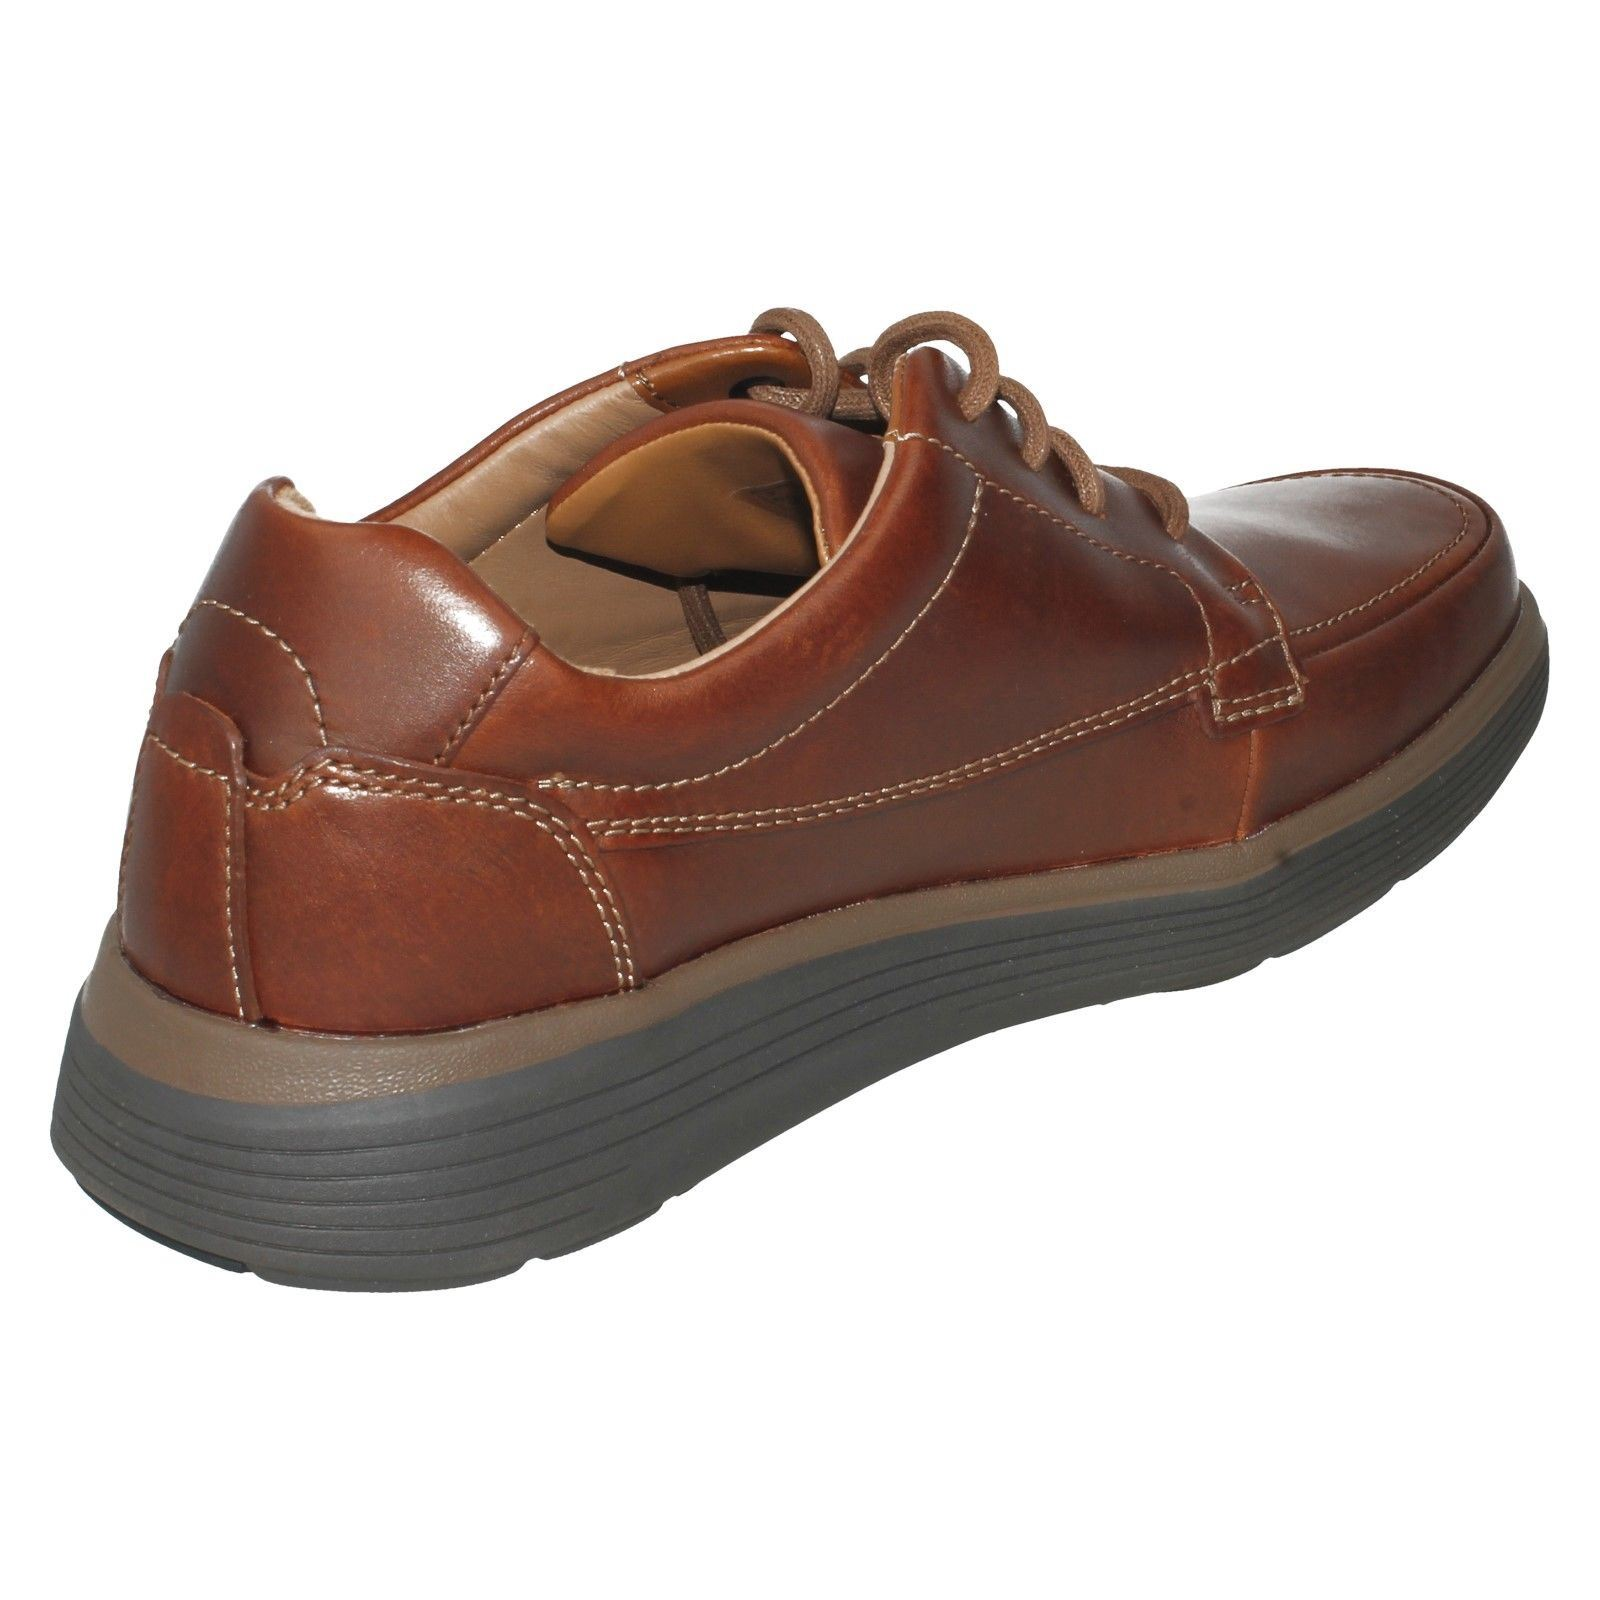 Herren UnstructuROT by Clarks Leder Style Lace Up Casual Schuhes Style Leder - Un Abode Ease 4778b4